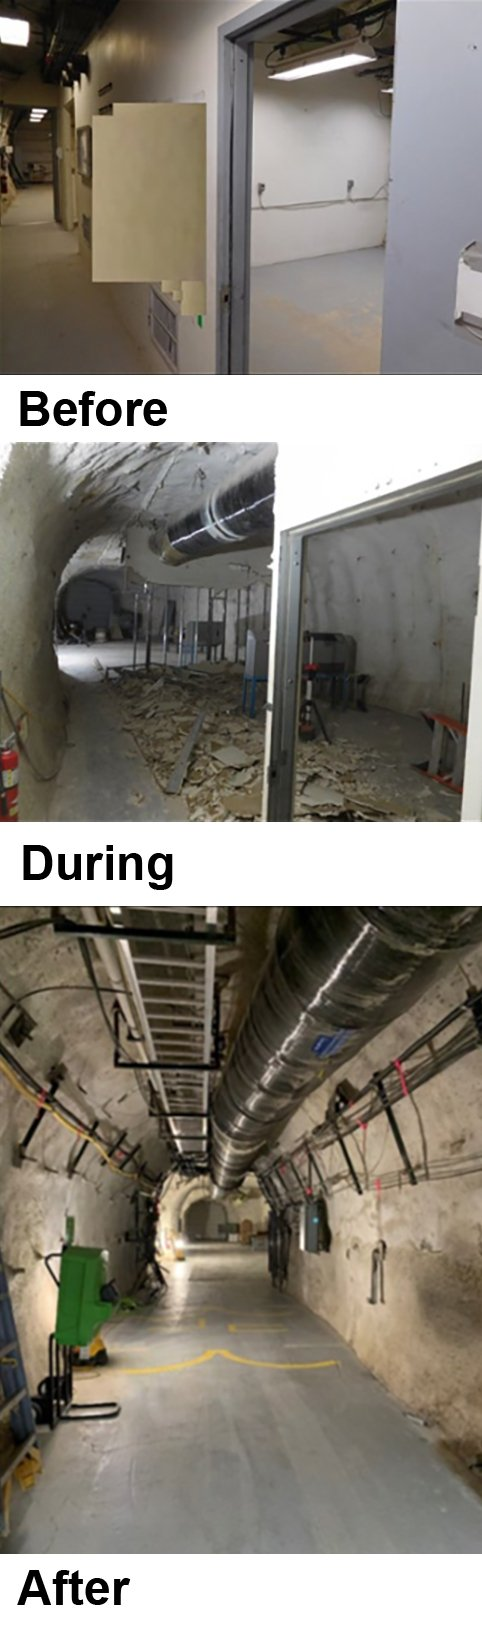 Before, during, and after photos of the U1a Complex Enhancements Project.